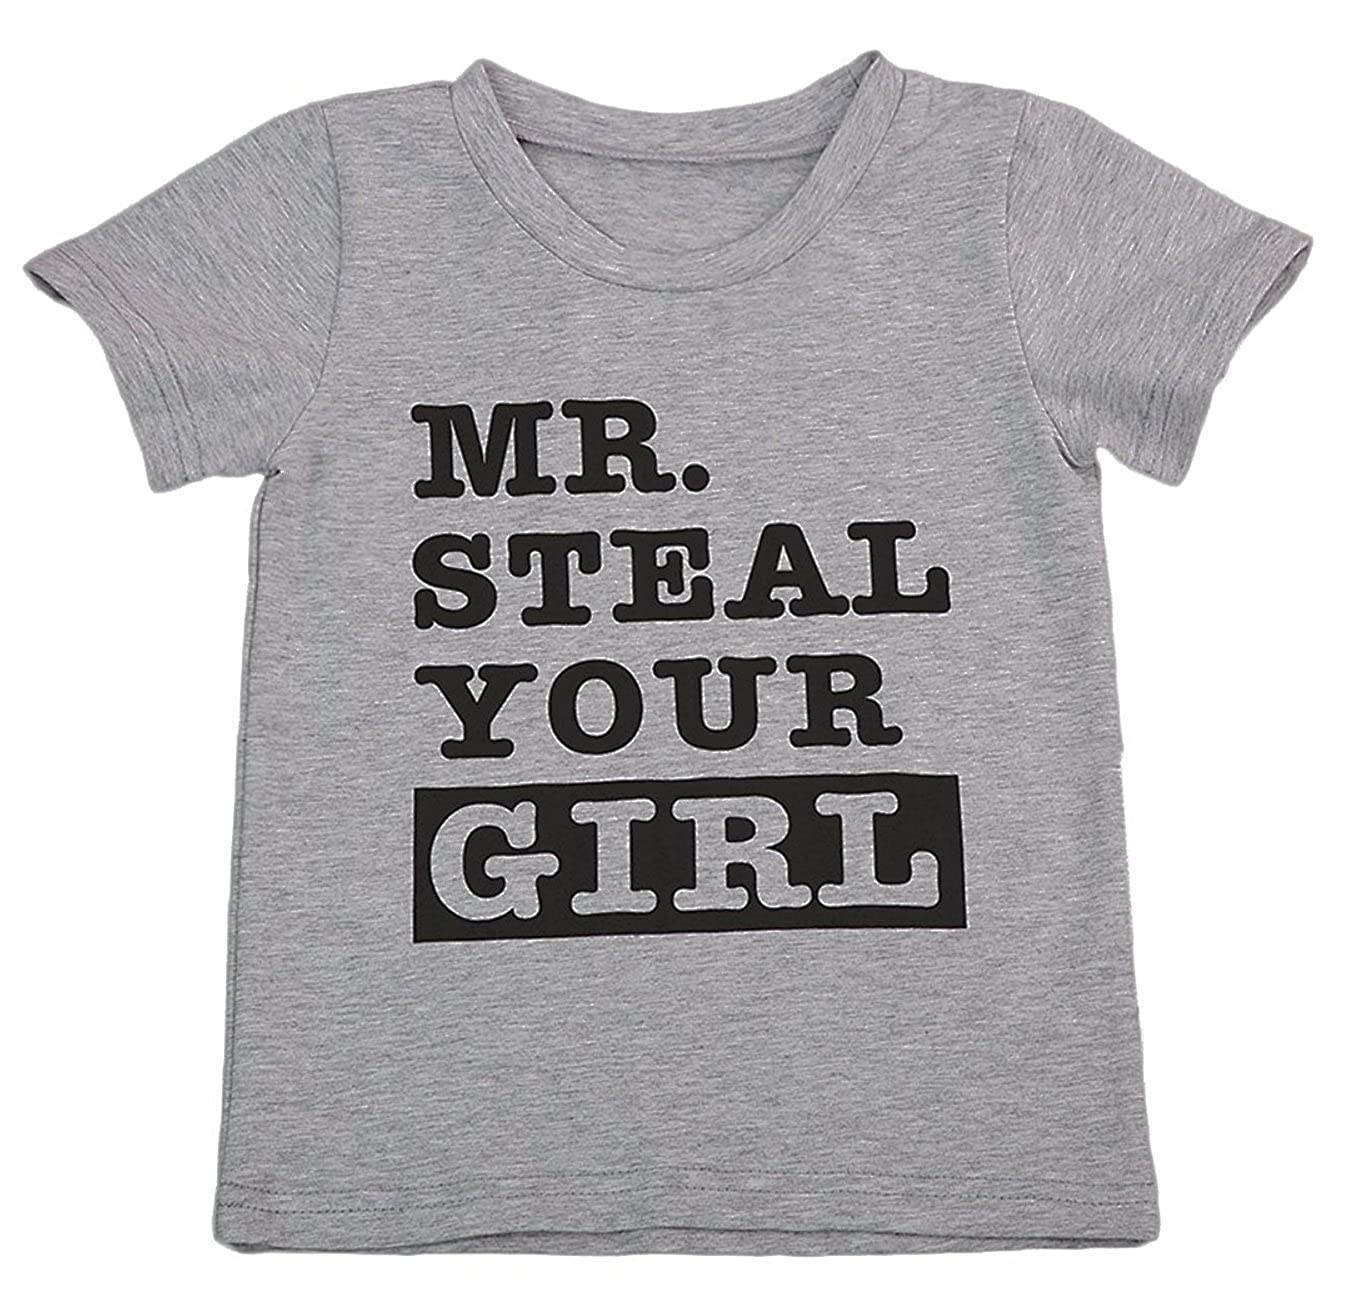 SWNONE Toddler Baby Boy Short Sleeve Letter Print Shirts Mr. Steal Your Girl Clothes Outfit